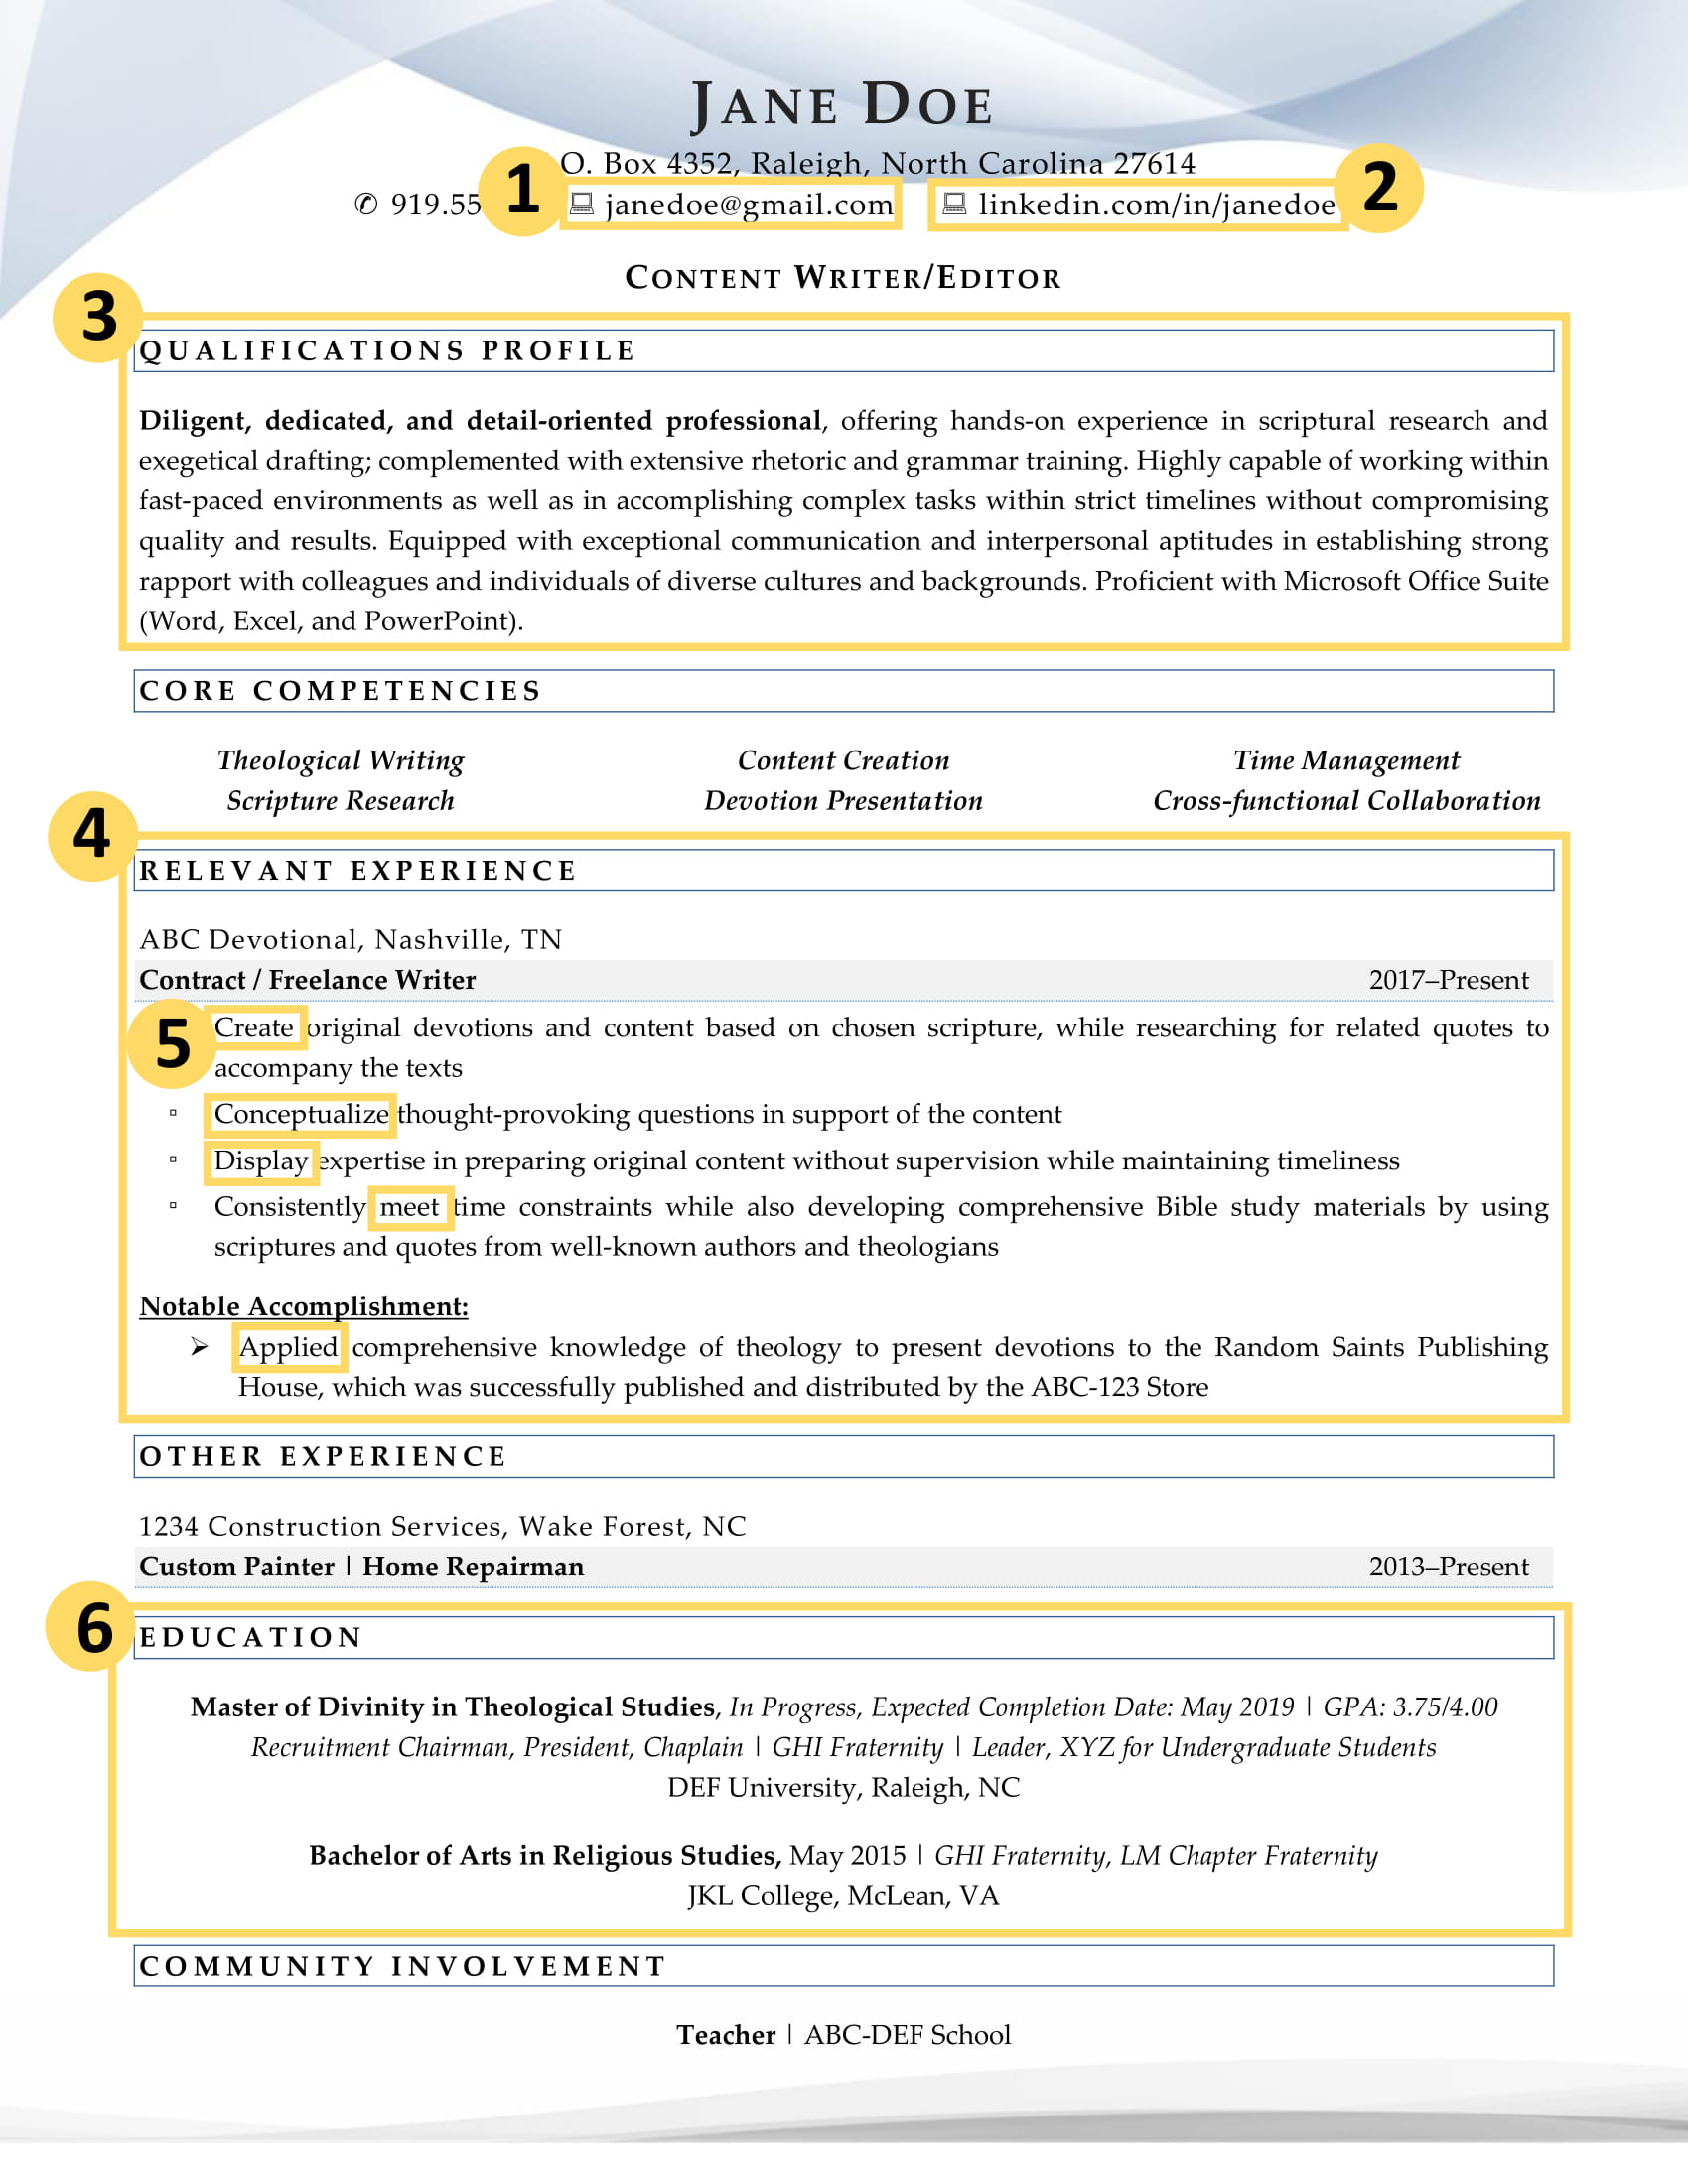 recent college graduate resume factors that make it excellent tips for grads example Resume Resume Tips For Recent College Grads